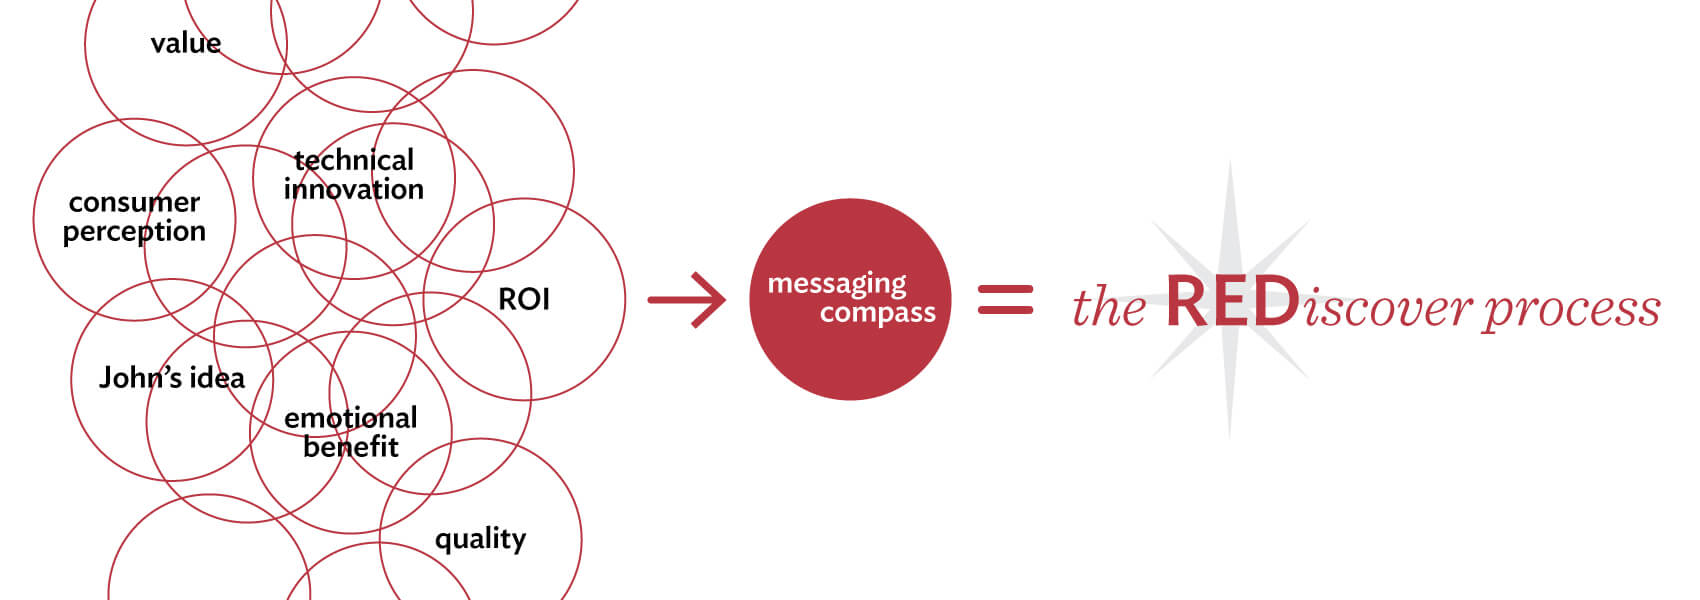 Merlot Marketing's REDiscover process